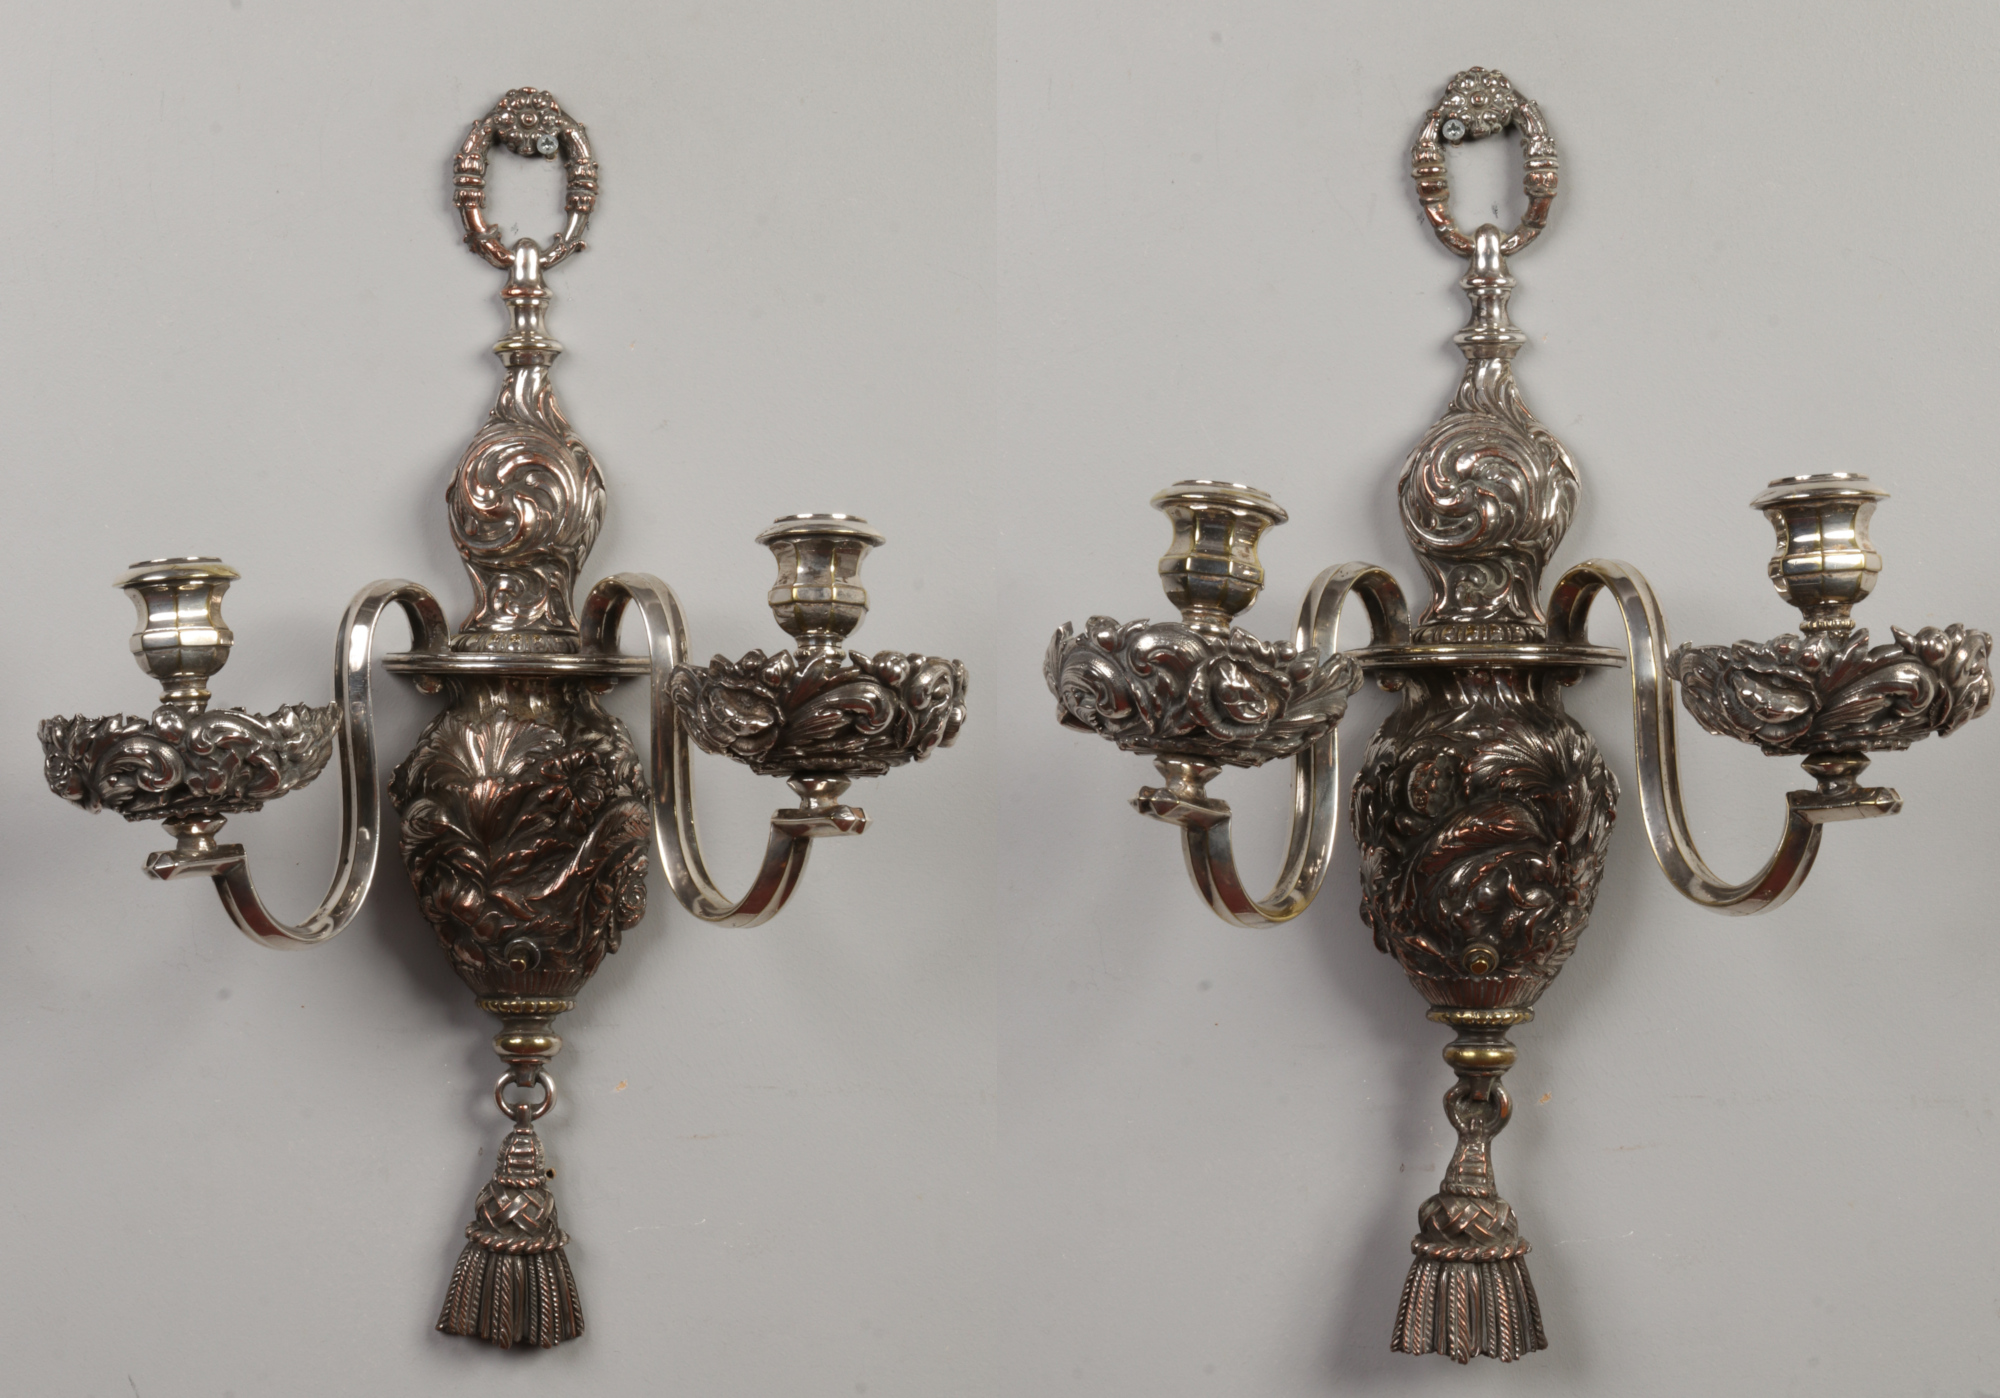 Lot 246 - A pair of silver plated twin branch wall lights. Cast in relief with scrolling foliage and flowers